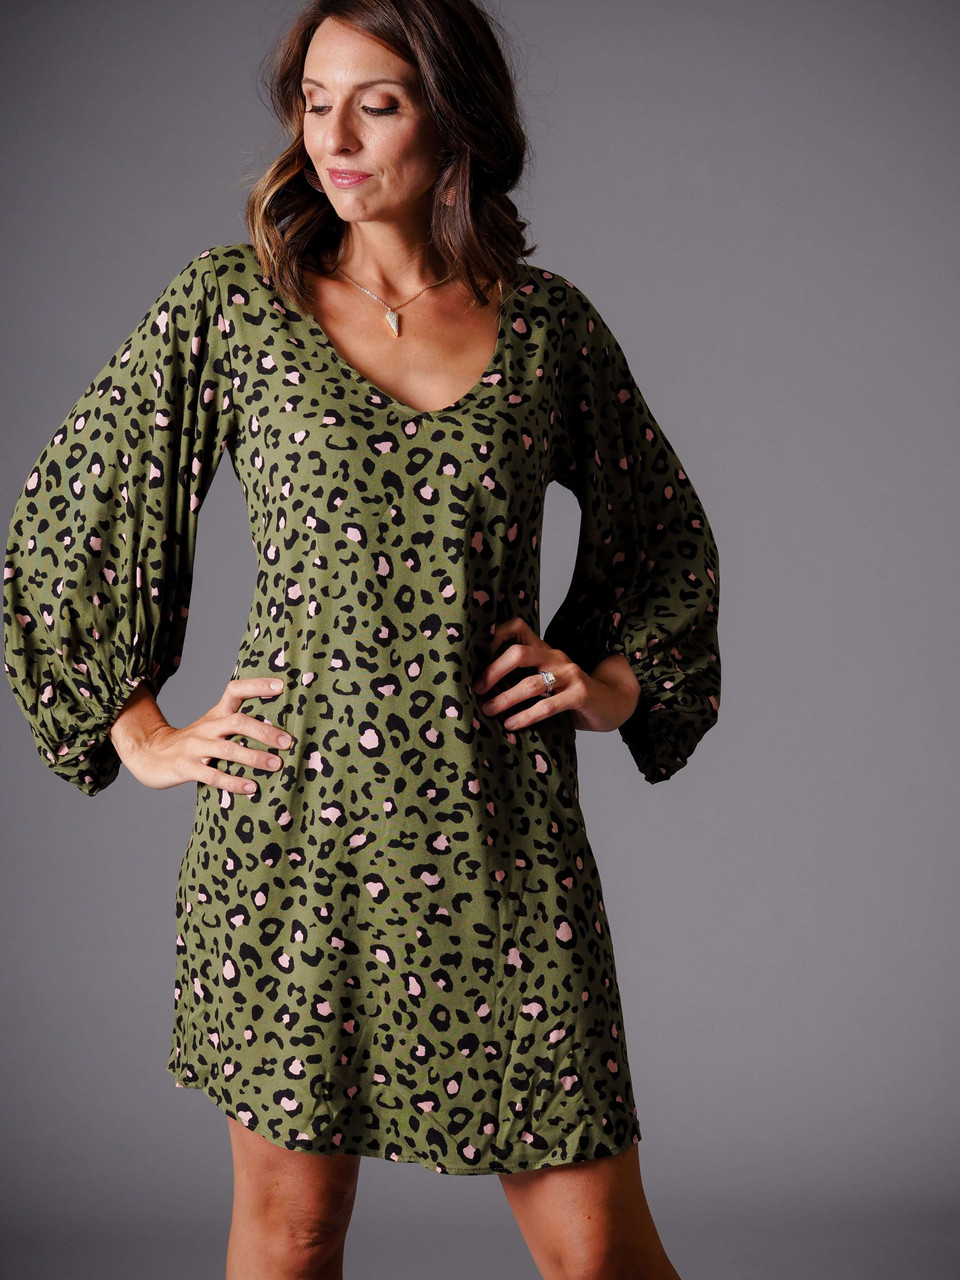 pink and olive green leopard animal print dress